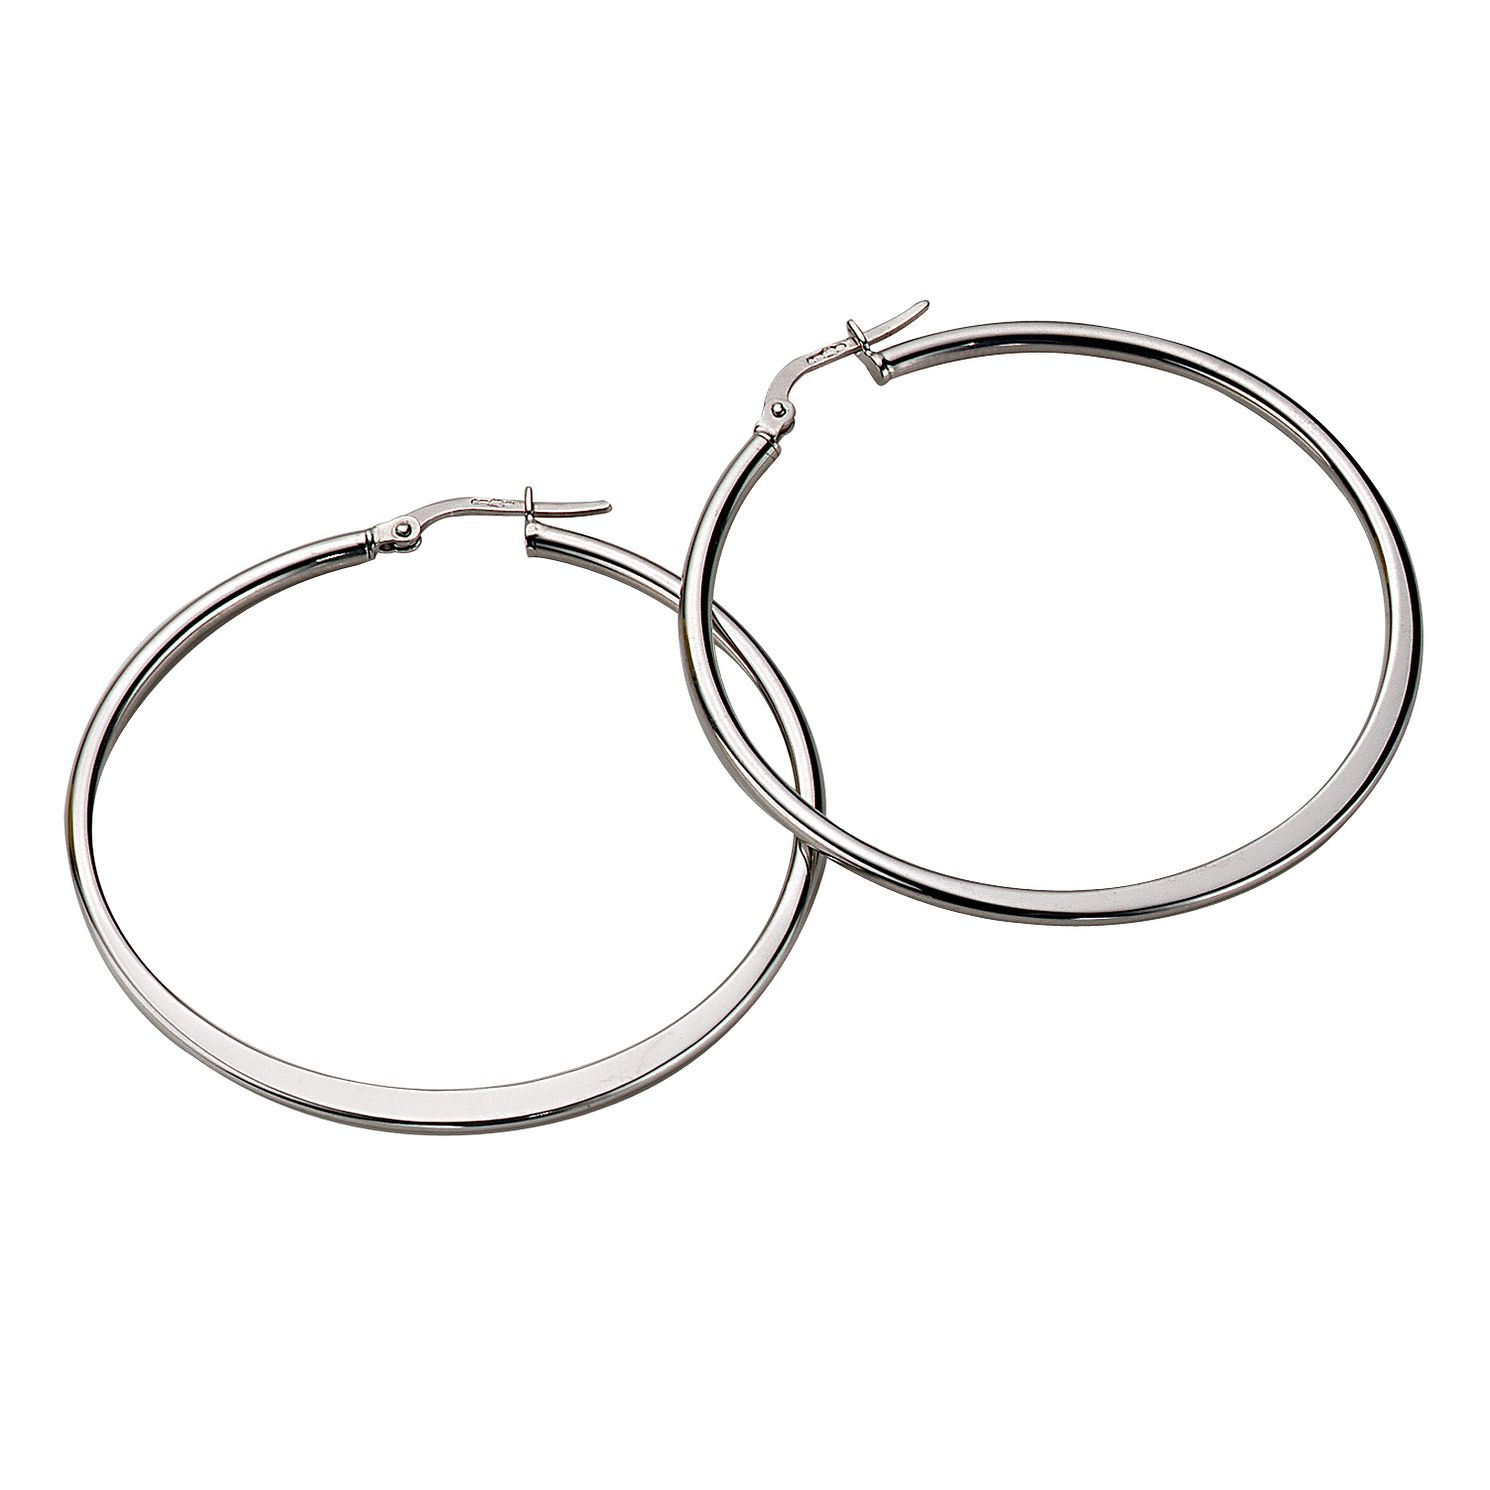 9ct White Gold Tapered 40mm Hoop Earrings - Product number 4885627